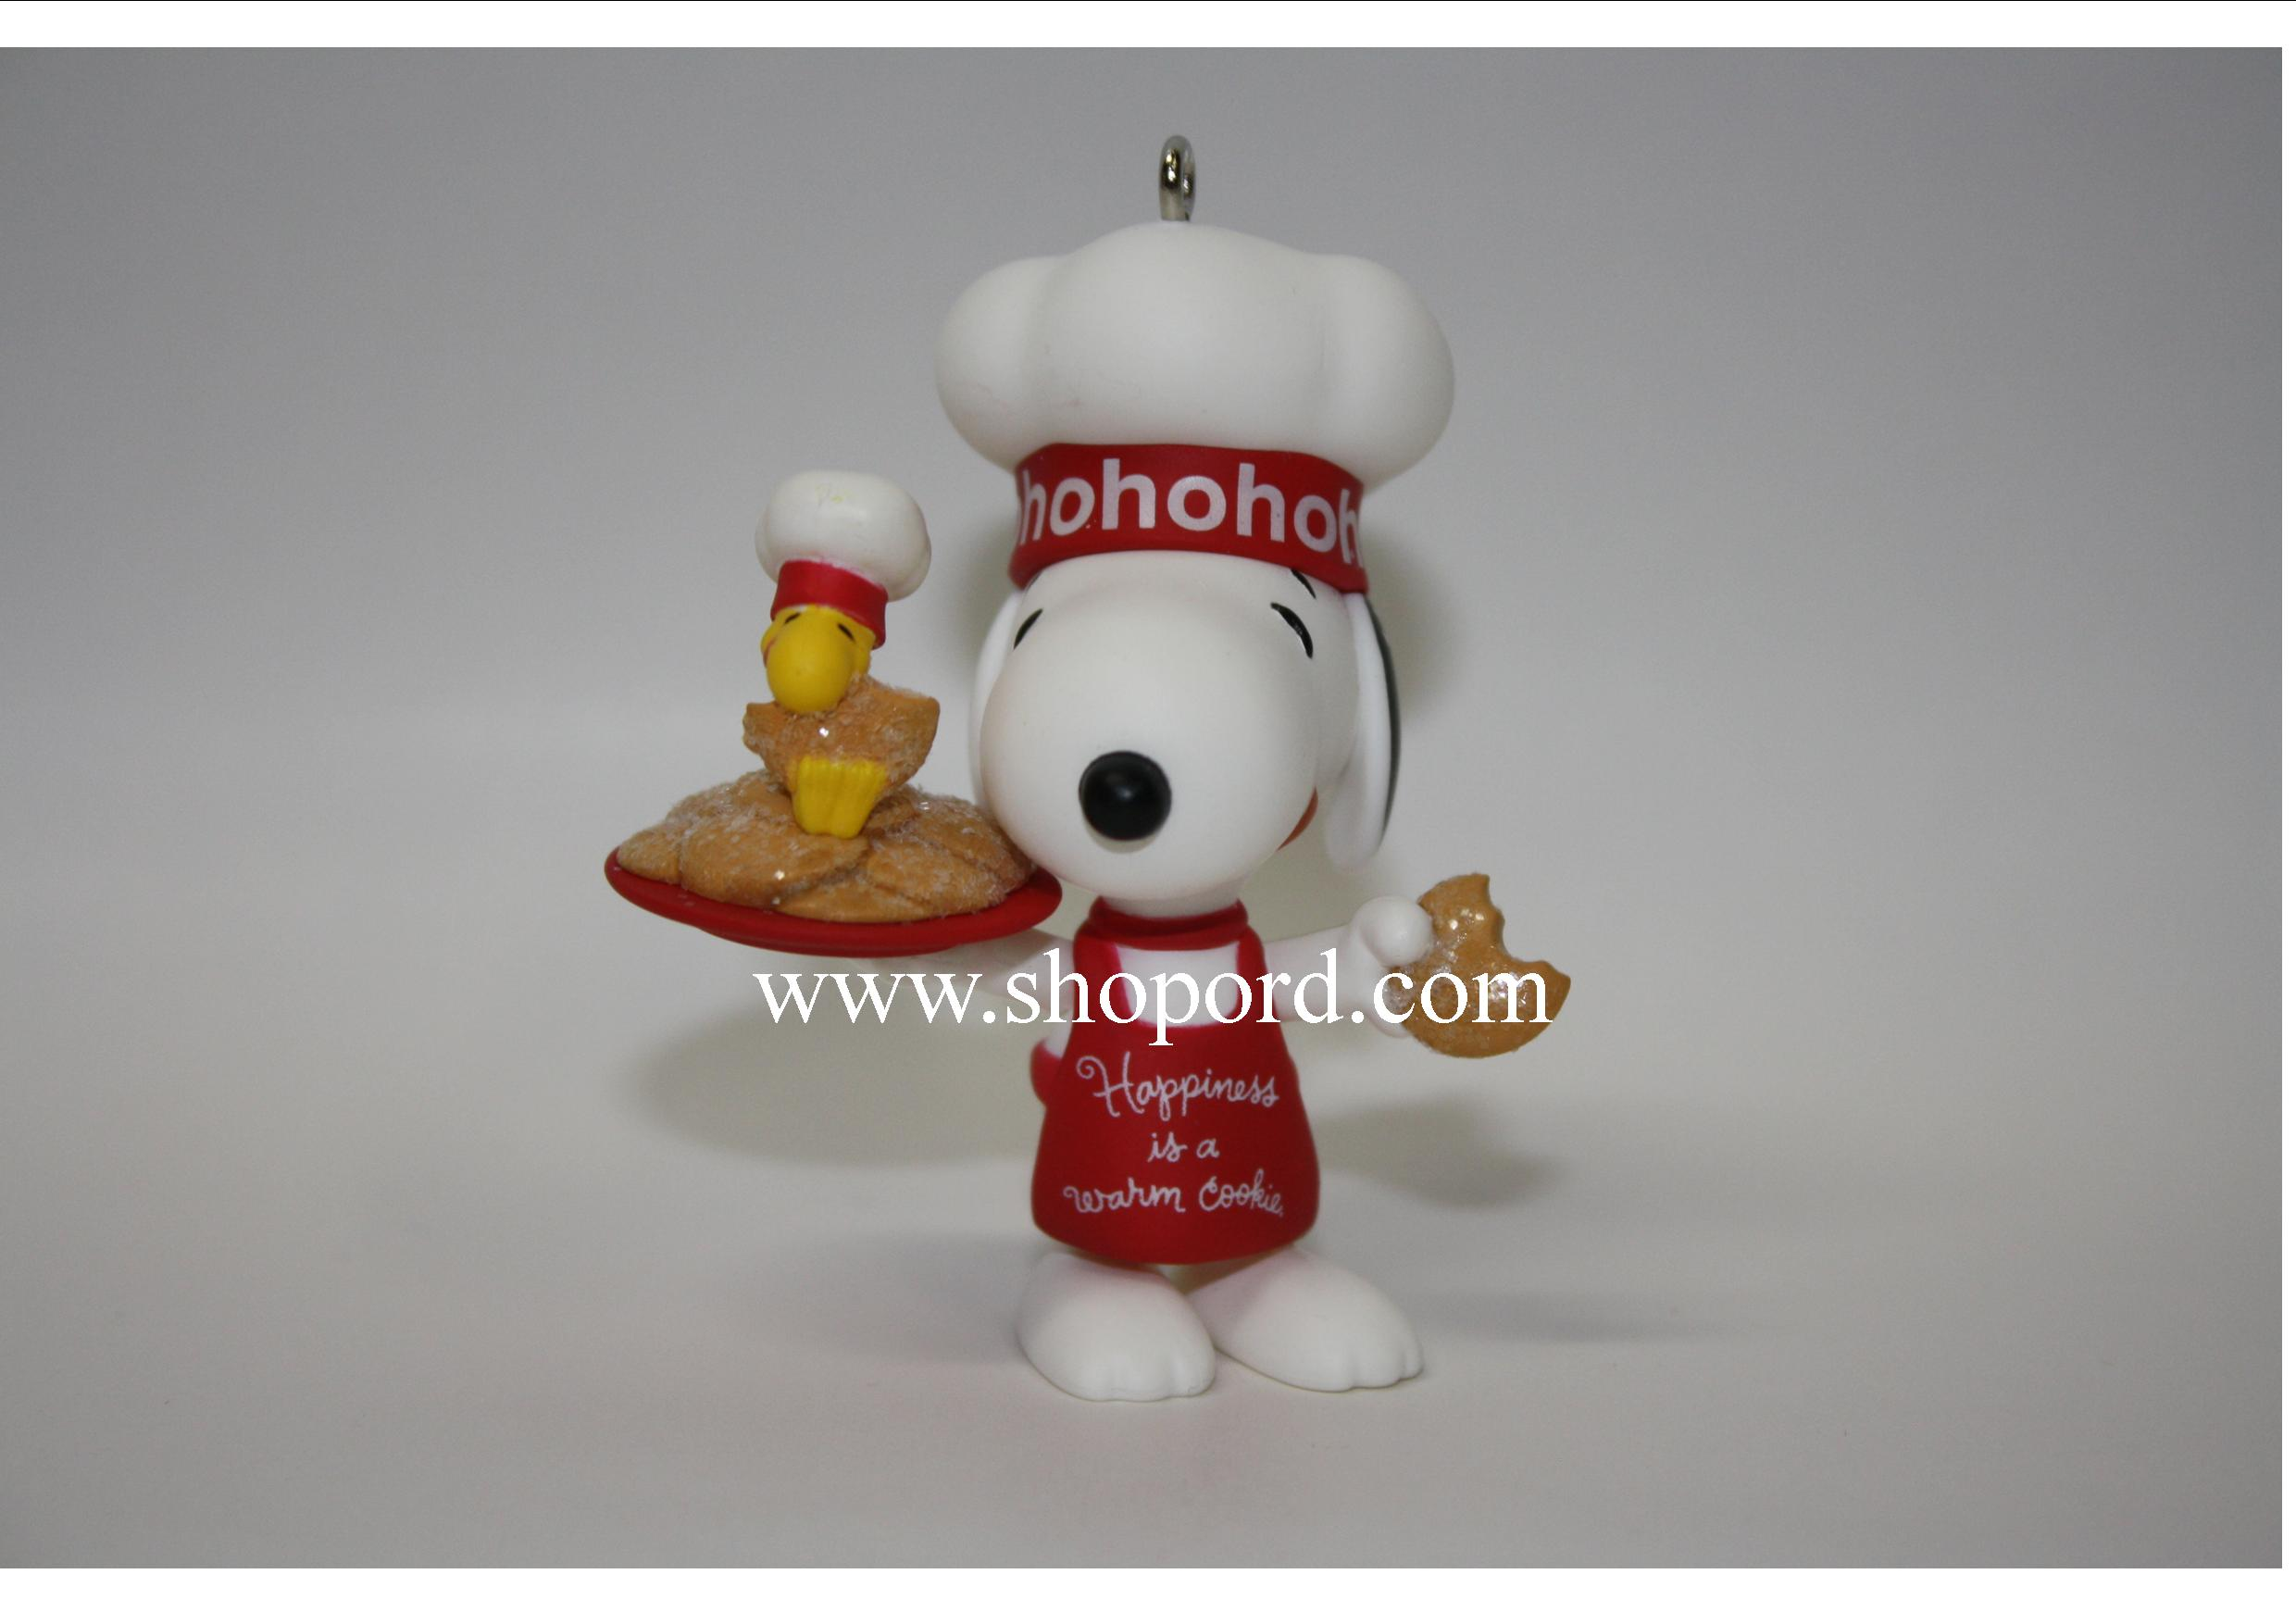 Hallmark 2011 Happiness Is a Warm Cookie Ornament Snoopy The Peanuts Gang QK5007